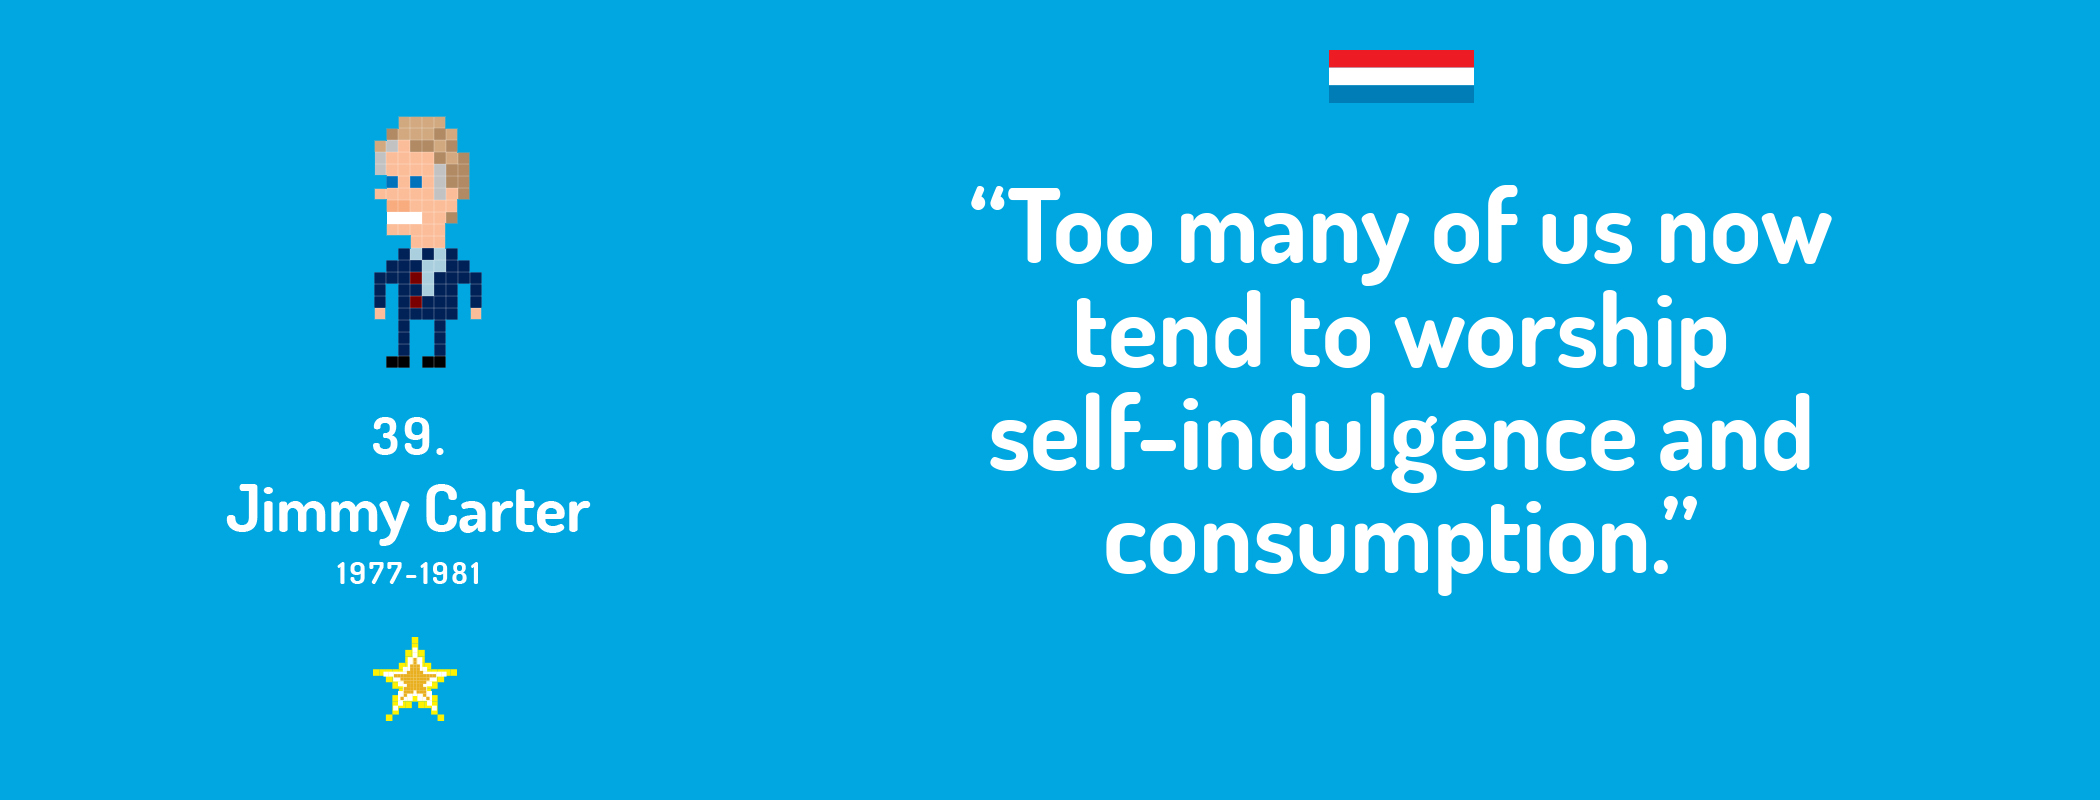 Too many of us now tend to worship self-indulgence and consumption.